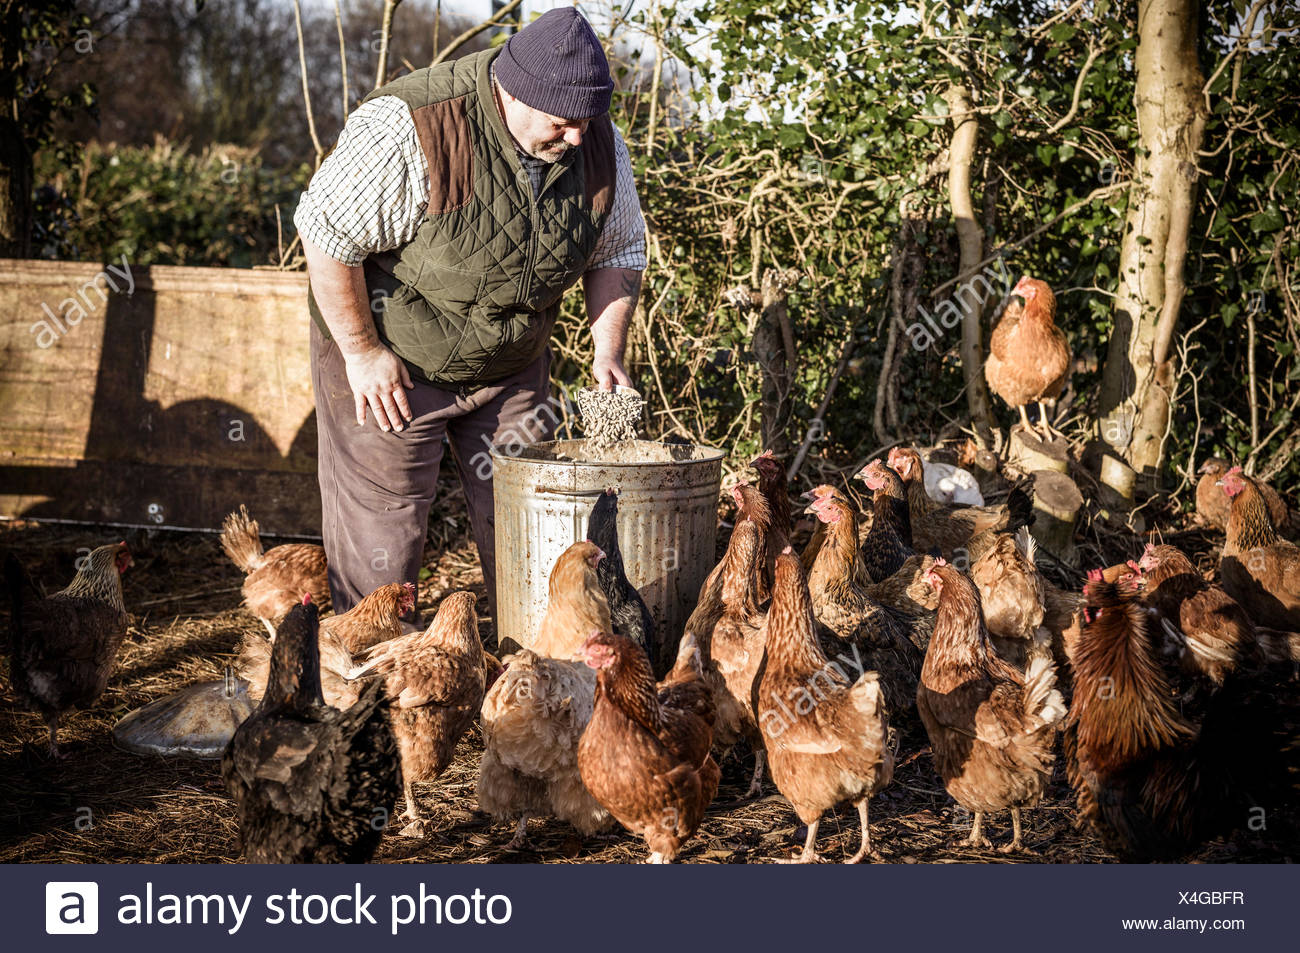 A farmer holding a feed bucket, surrounded by a flock of hungry chickens. - Stock Image